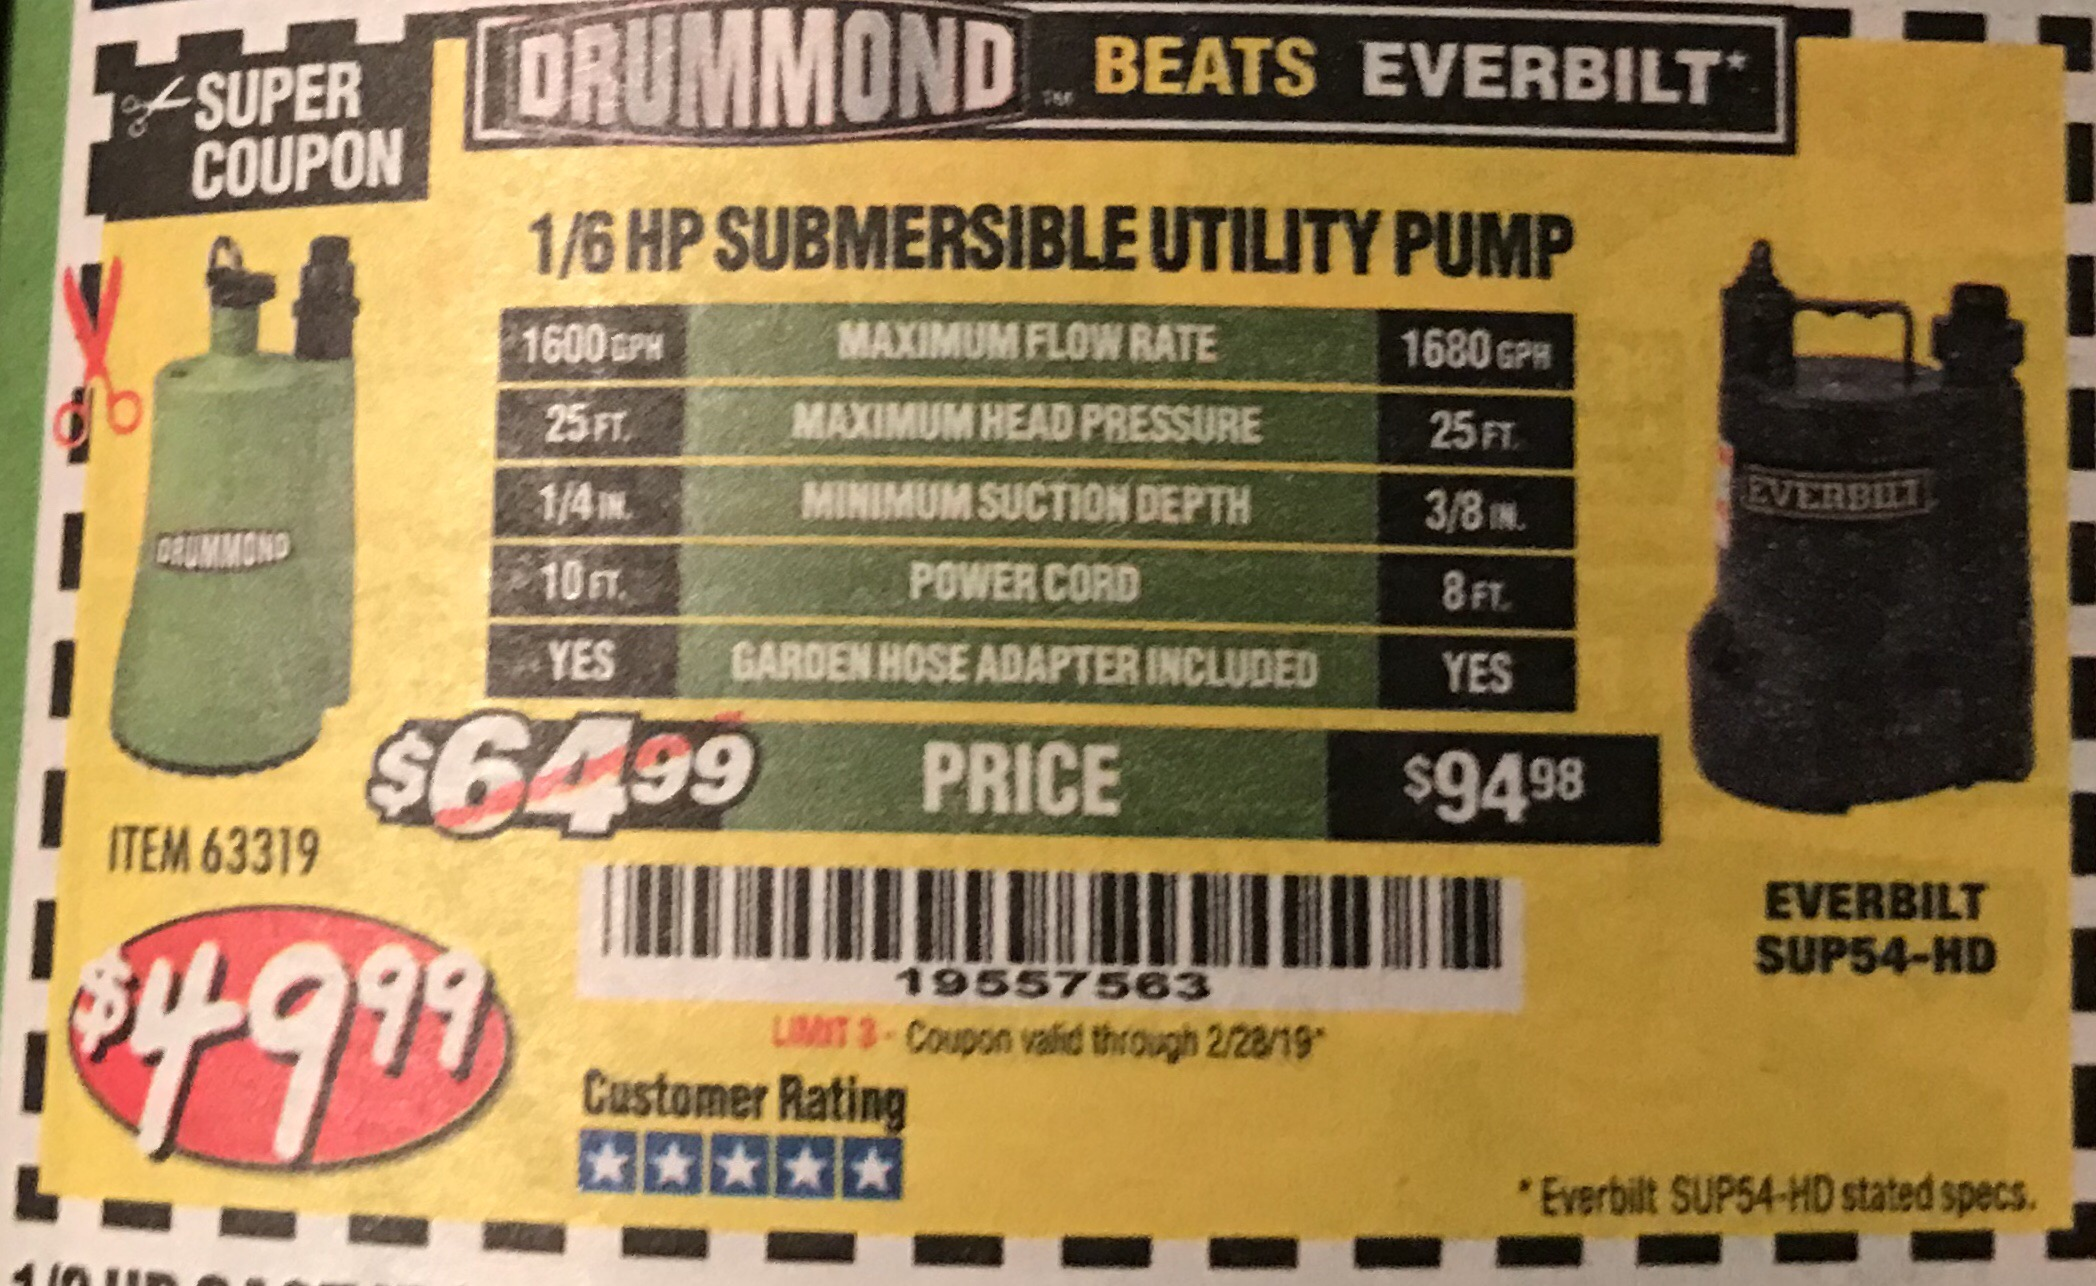 www.hfqpdb.com - 1/6 HP SUBMERSIBLE UTILITY PUMP Lot No. 63319